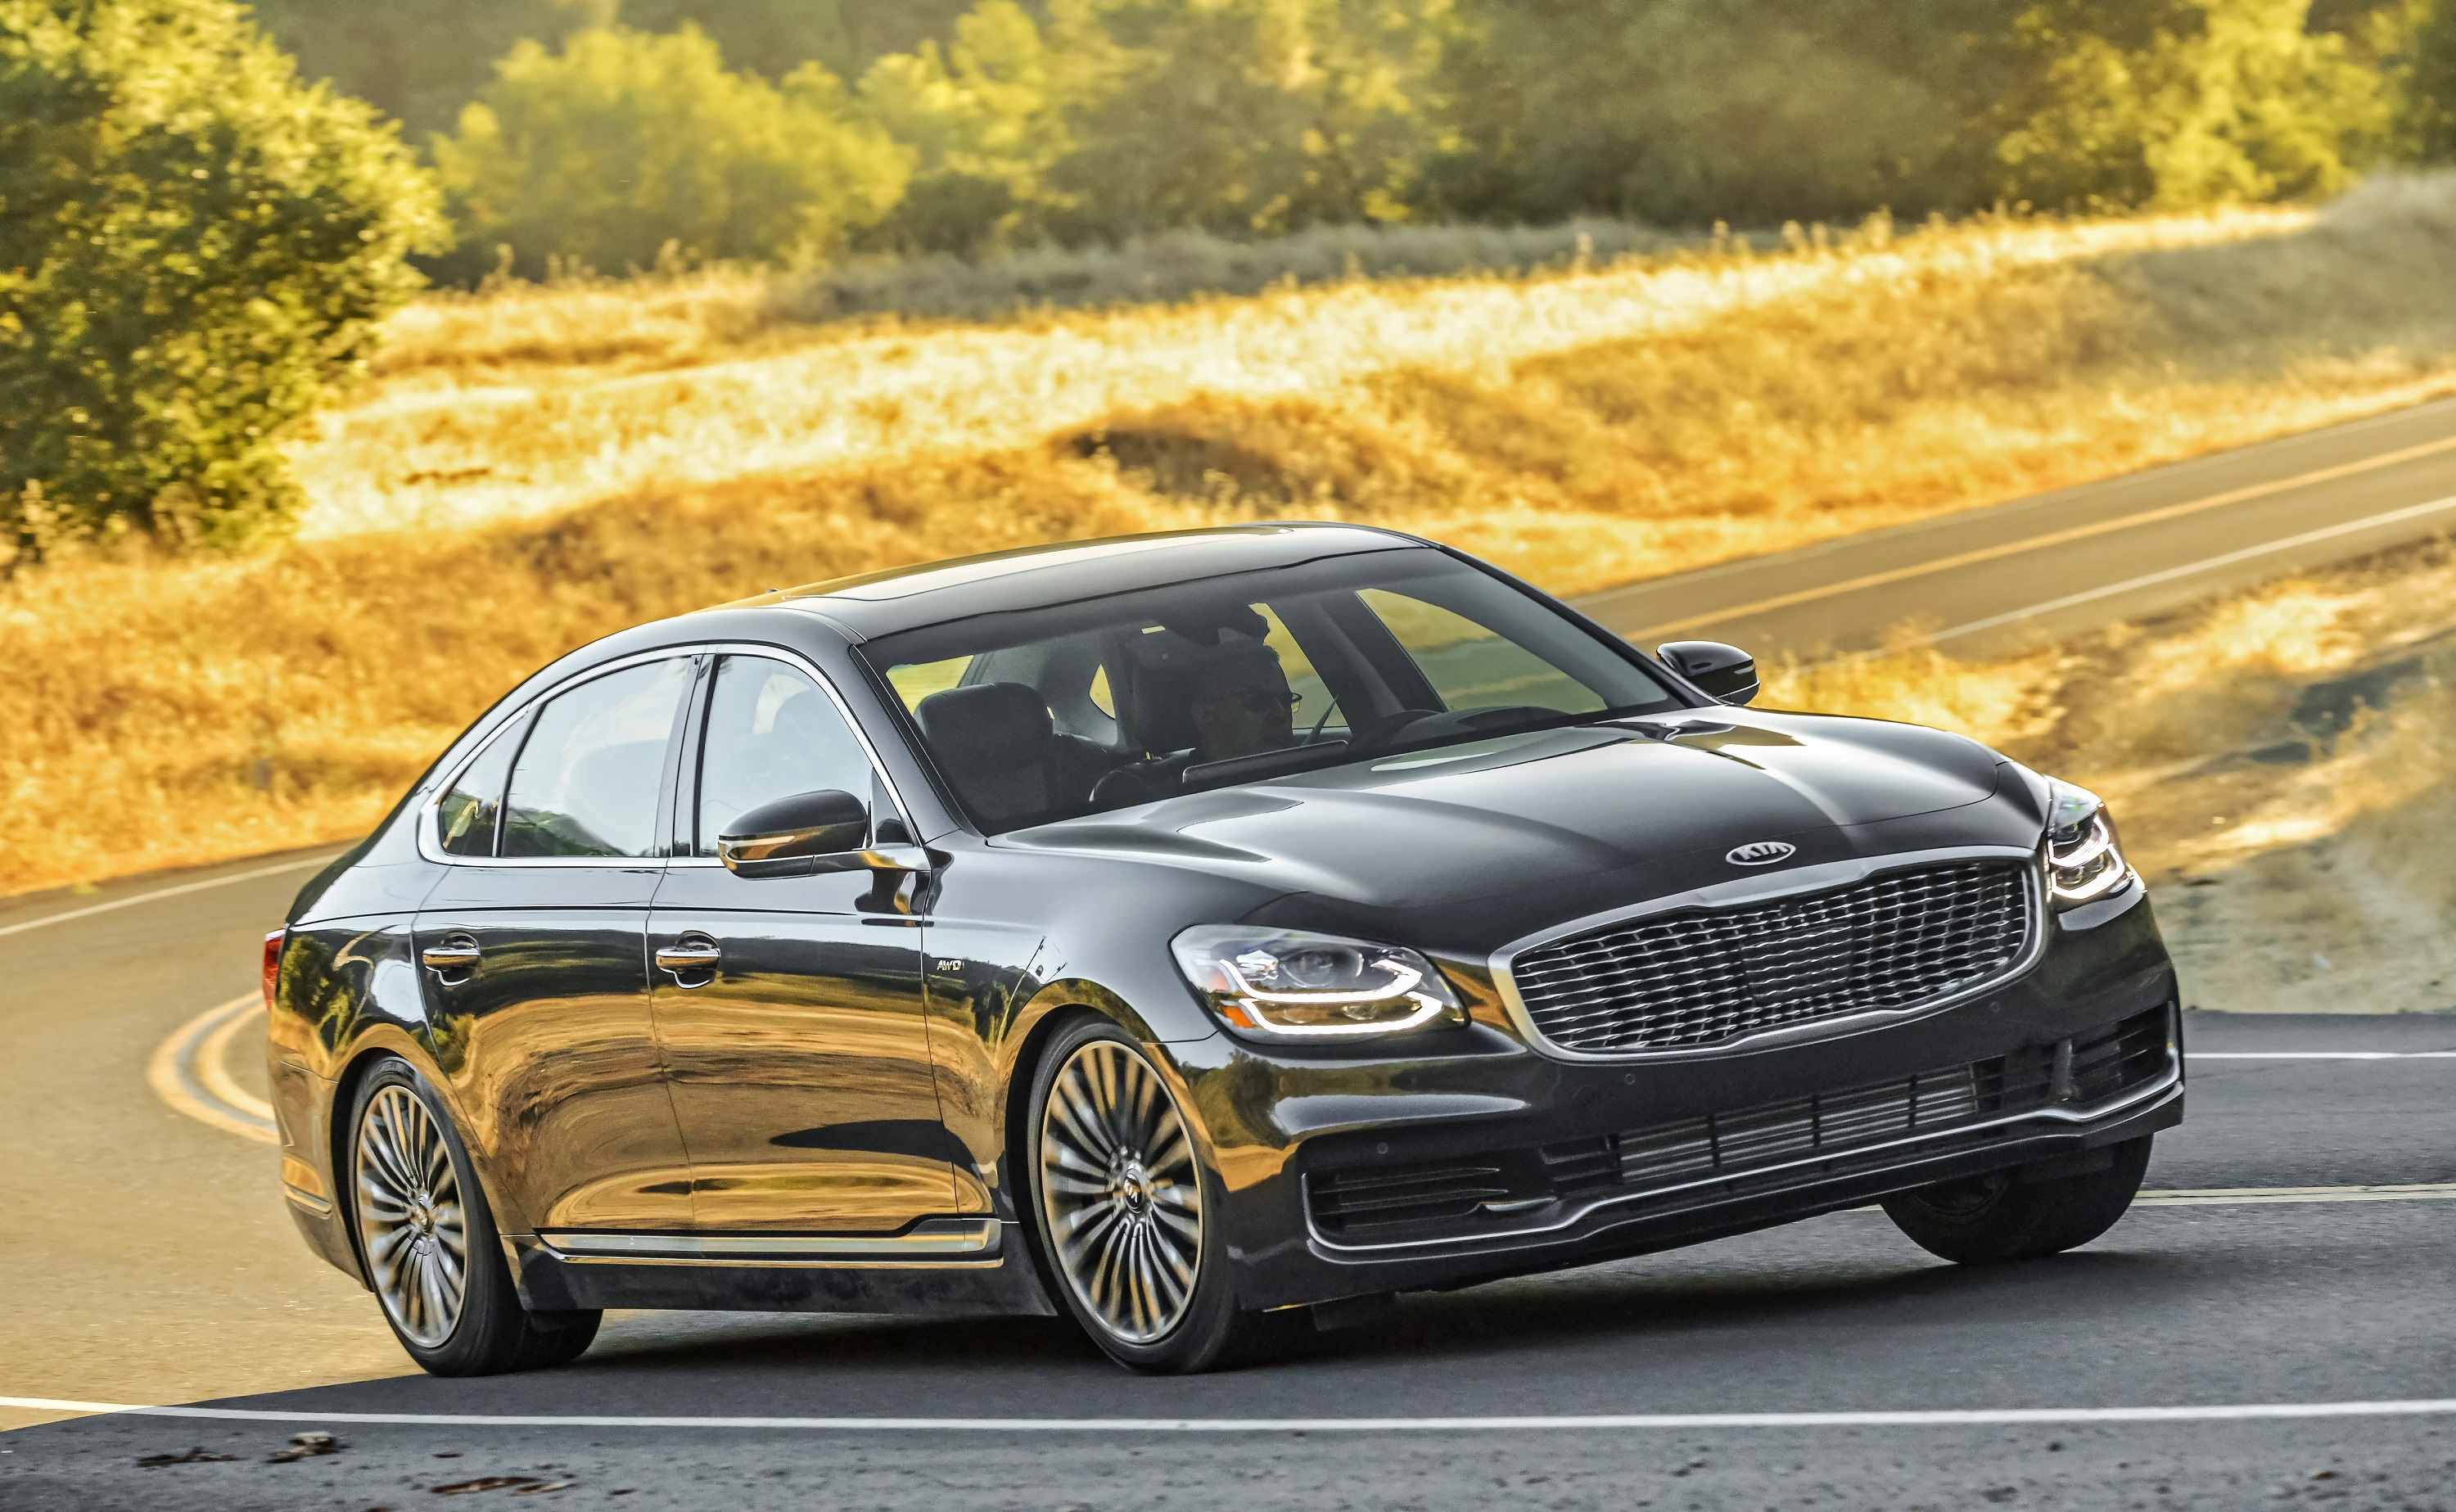 Manufacturer photo: Kia unveils the completely redesigned 2019 K900 sedan, establishing a new standard for luxury